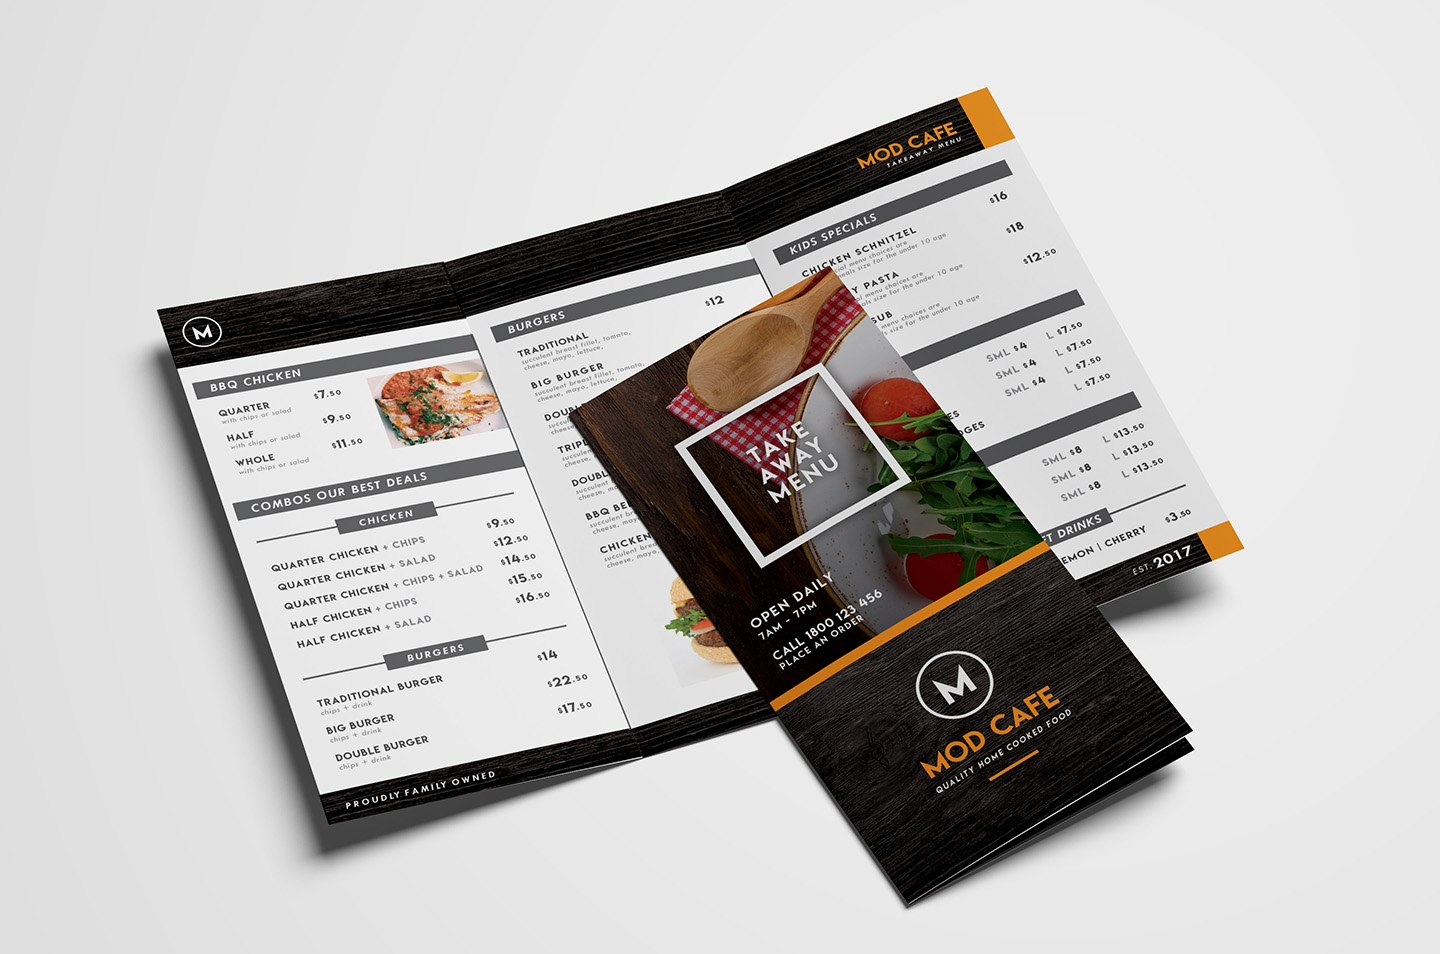 Free Menu Templates Pack Vol  Psd  Ai For Photoshop  Illustrator Intended For Tri Fold Menu Template Photoshop